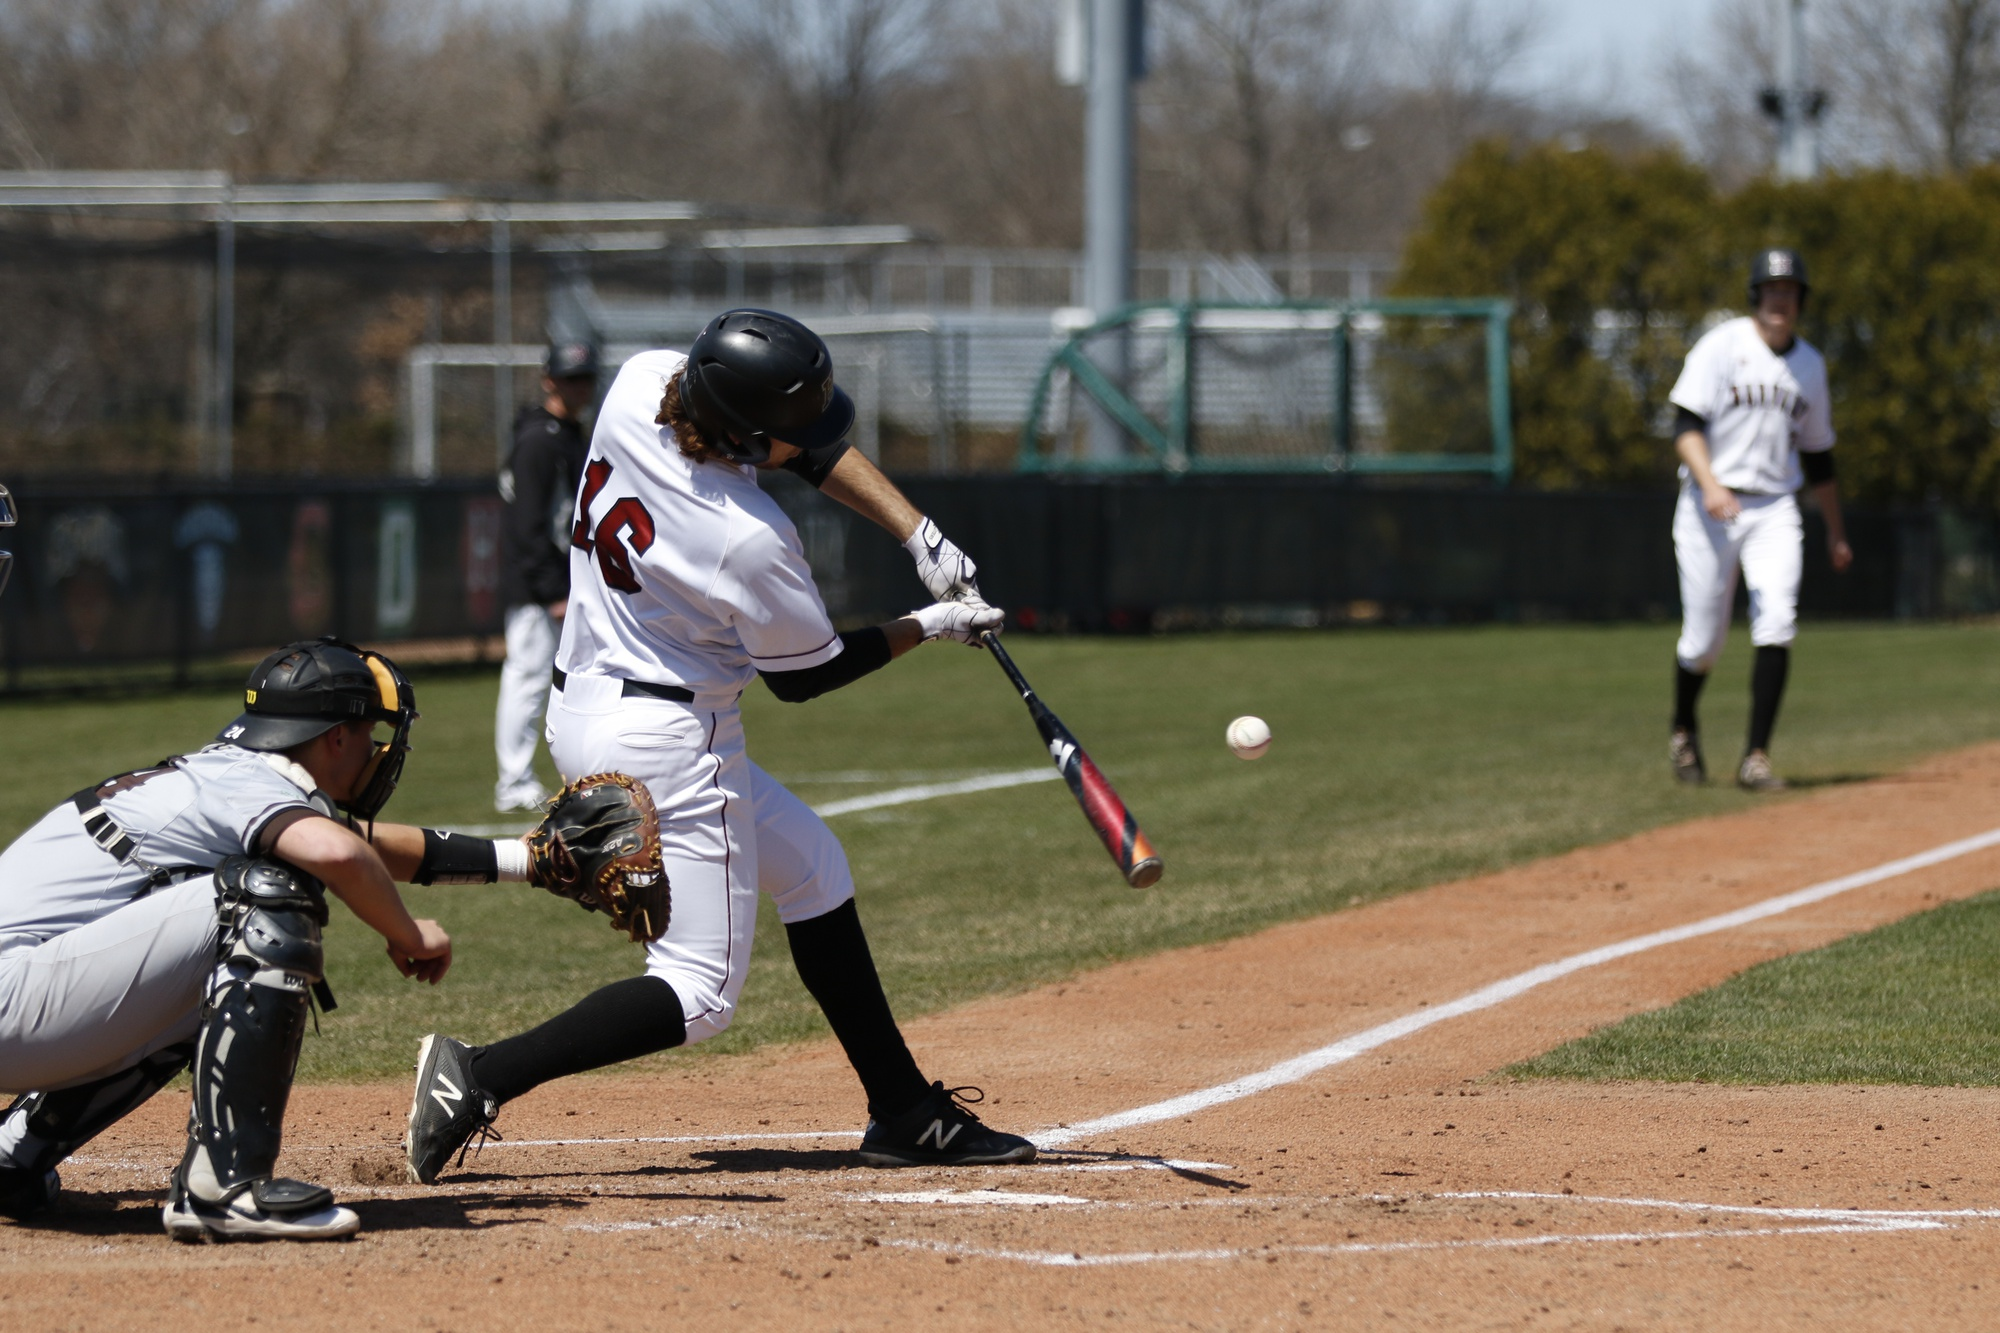 Junior Jake Suddleson hones in on a pitch against Brown.